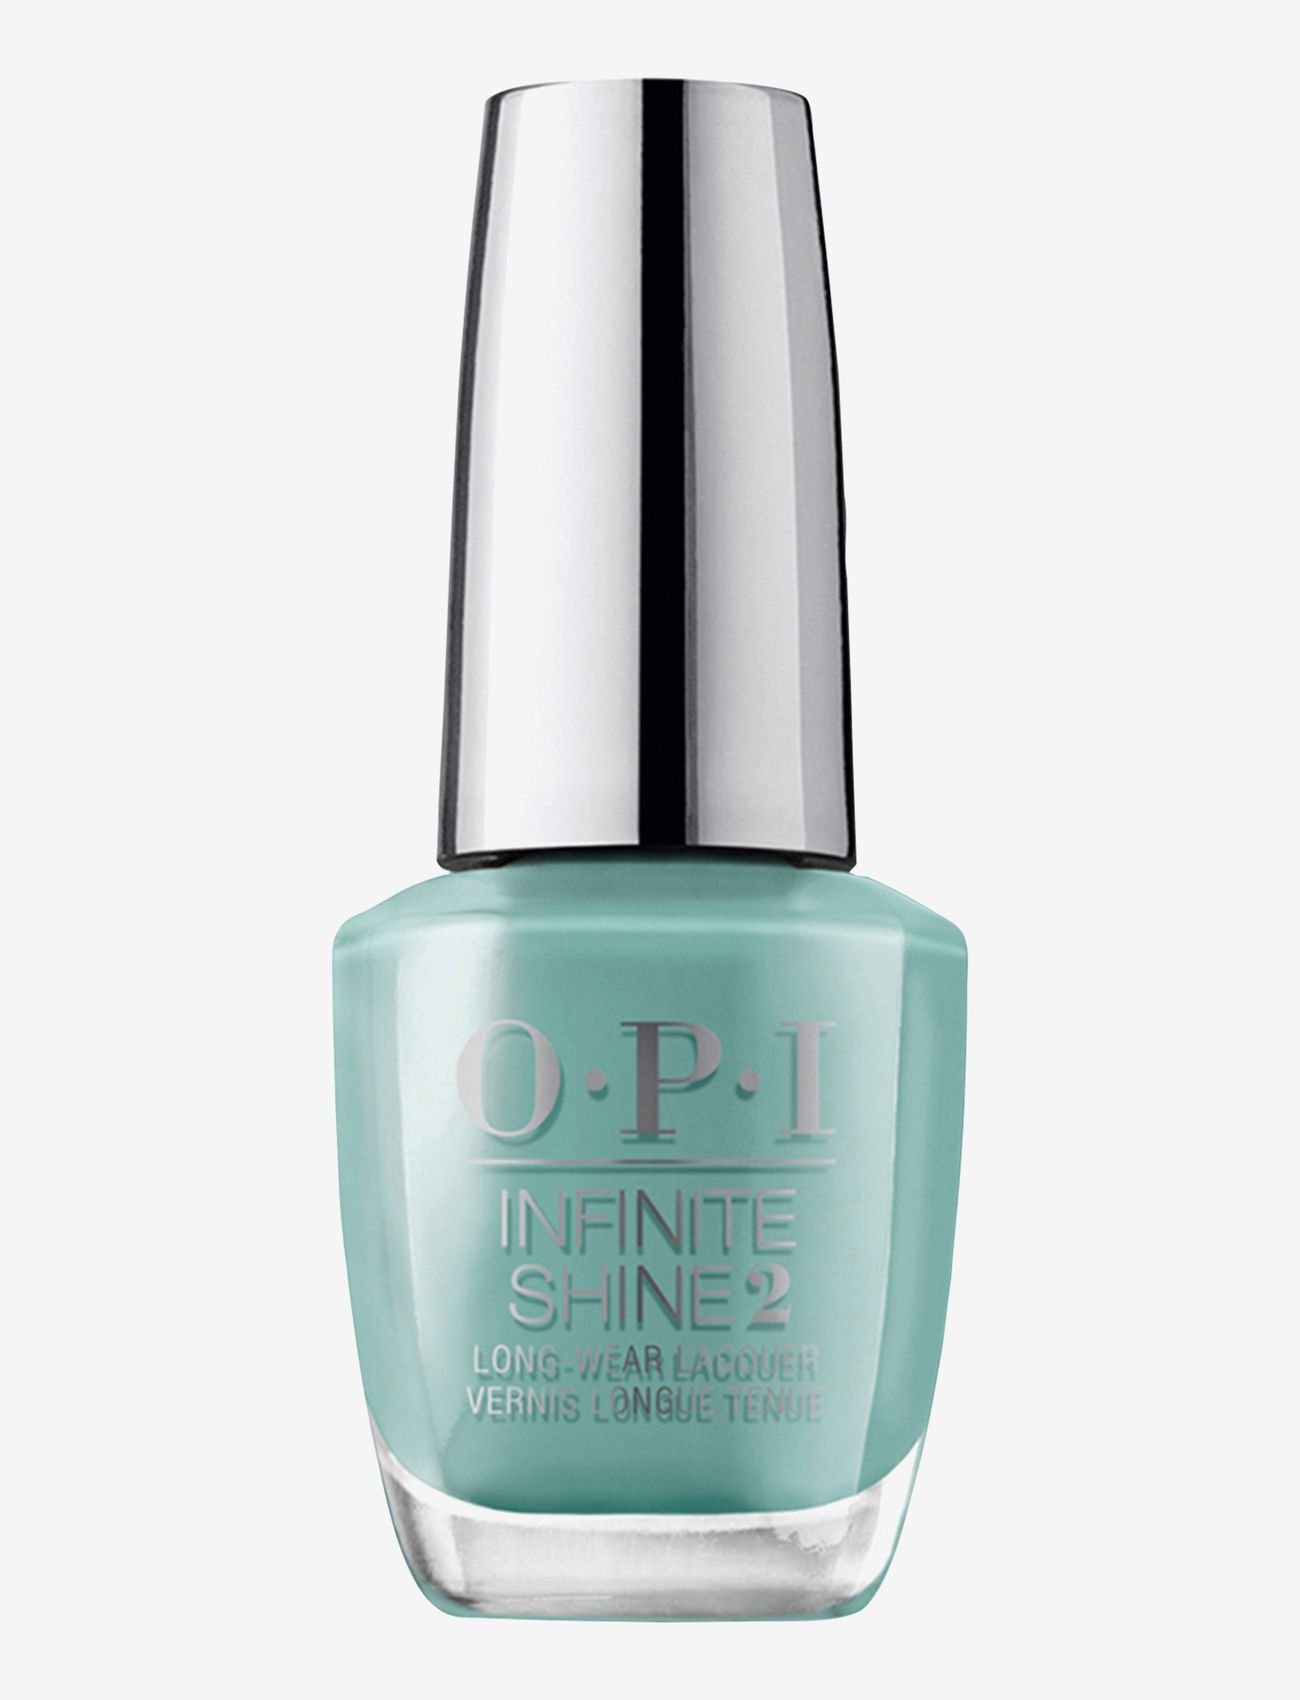 OPI - IS - CLOSER THAN YOU MIGHT BELÉM - topplack - closer than you might belÉm - 0